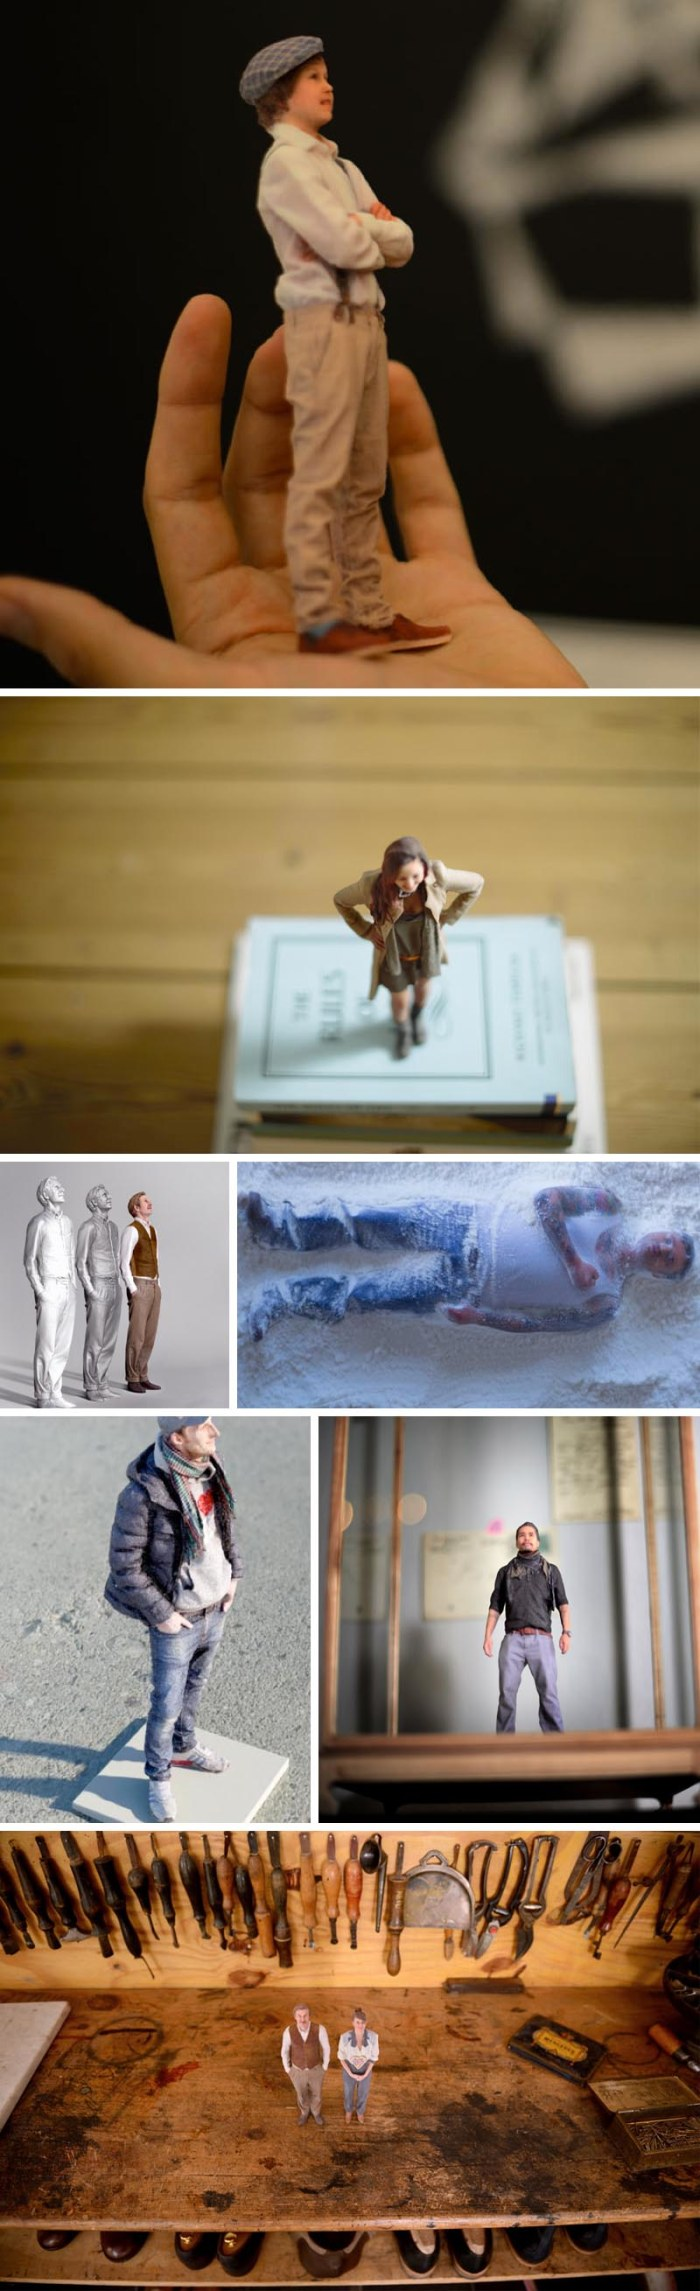 Twinkind, Hamburg-based company that can 3D print photo portrait figurines quickly. 3D-printed portraits.